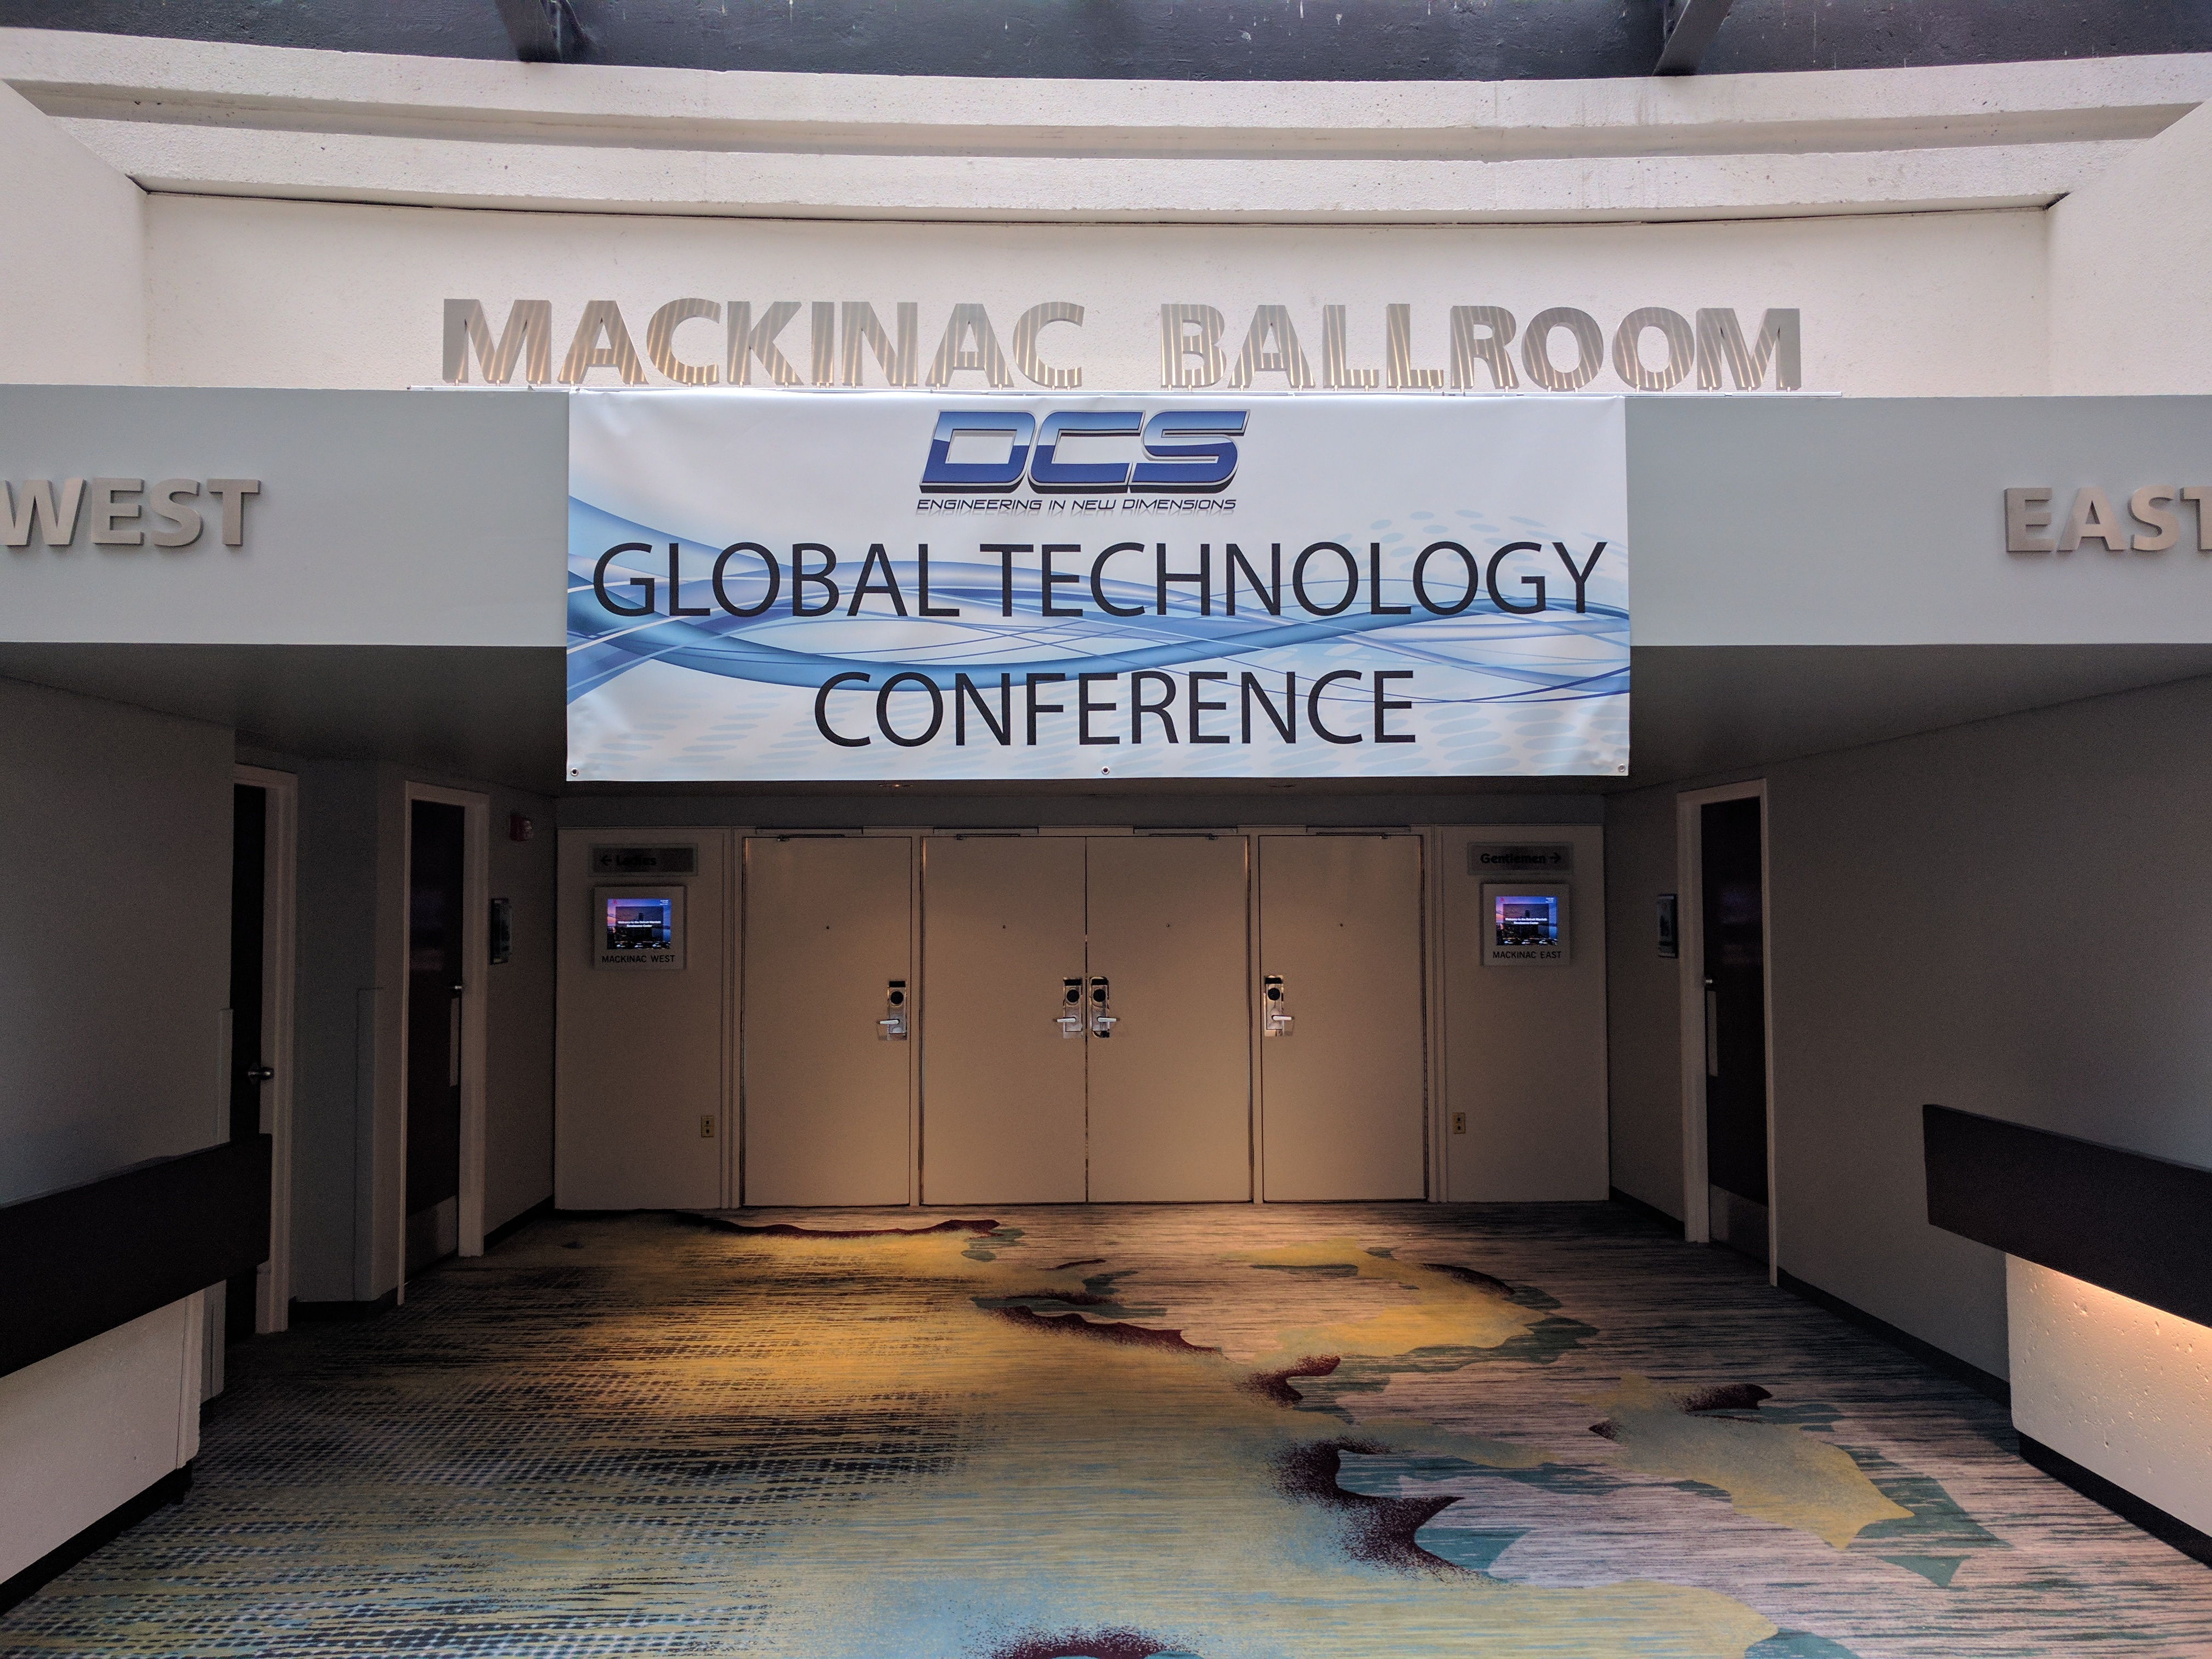 Global-Technology-Conference-Banner